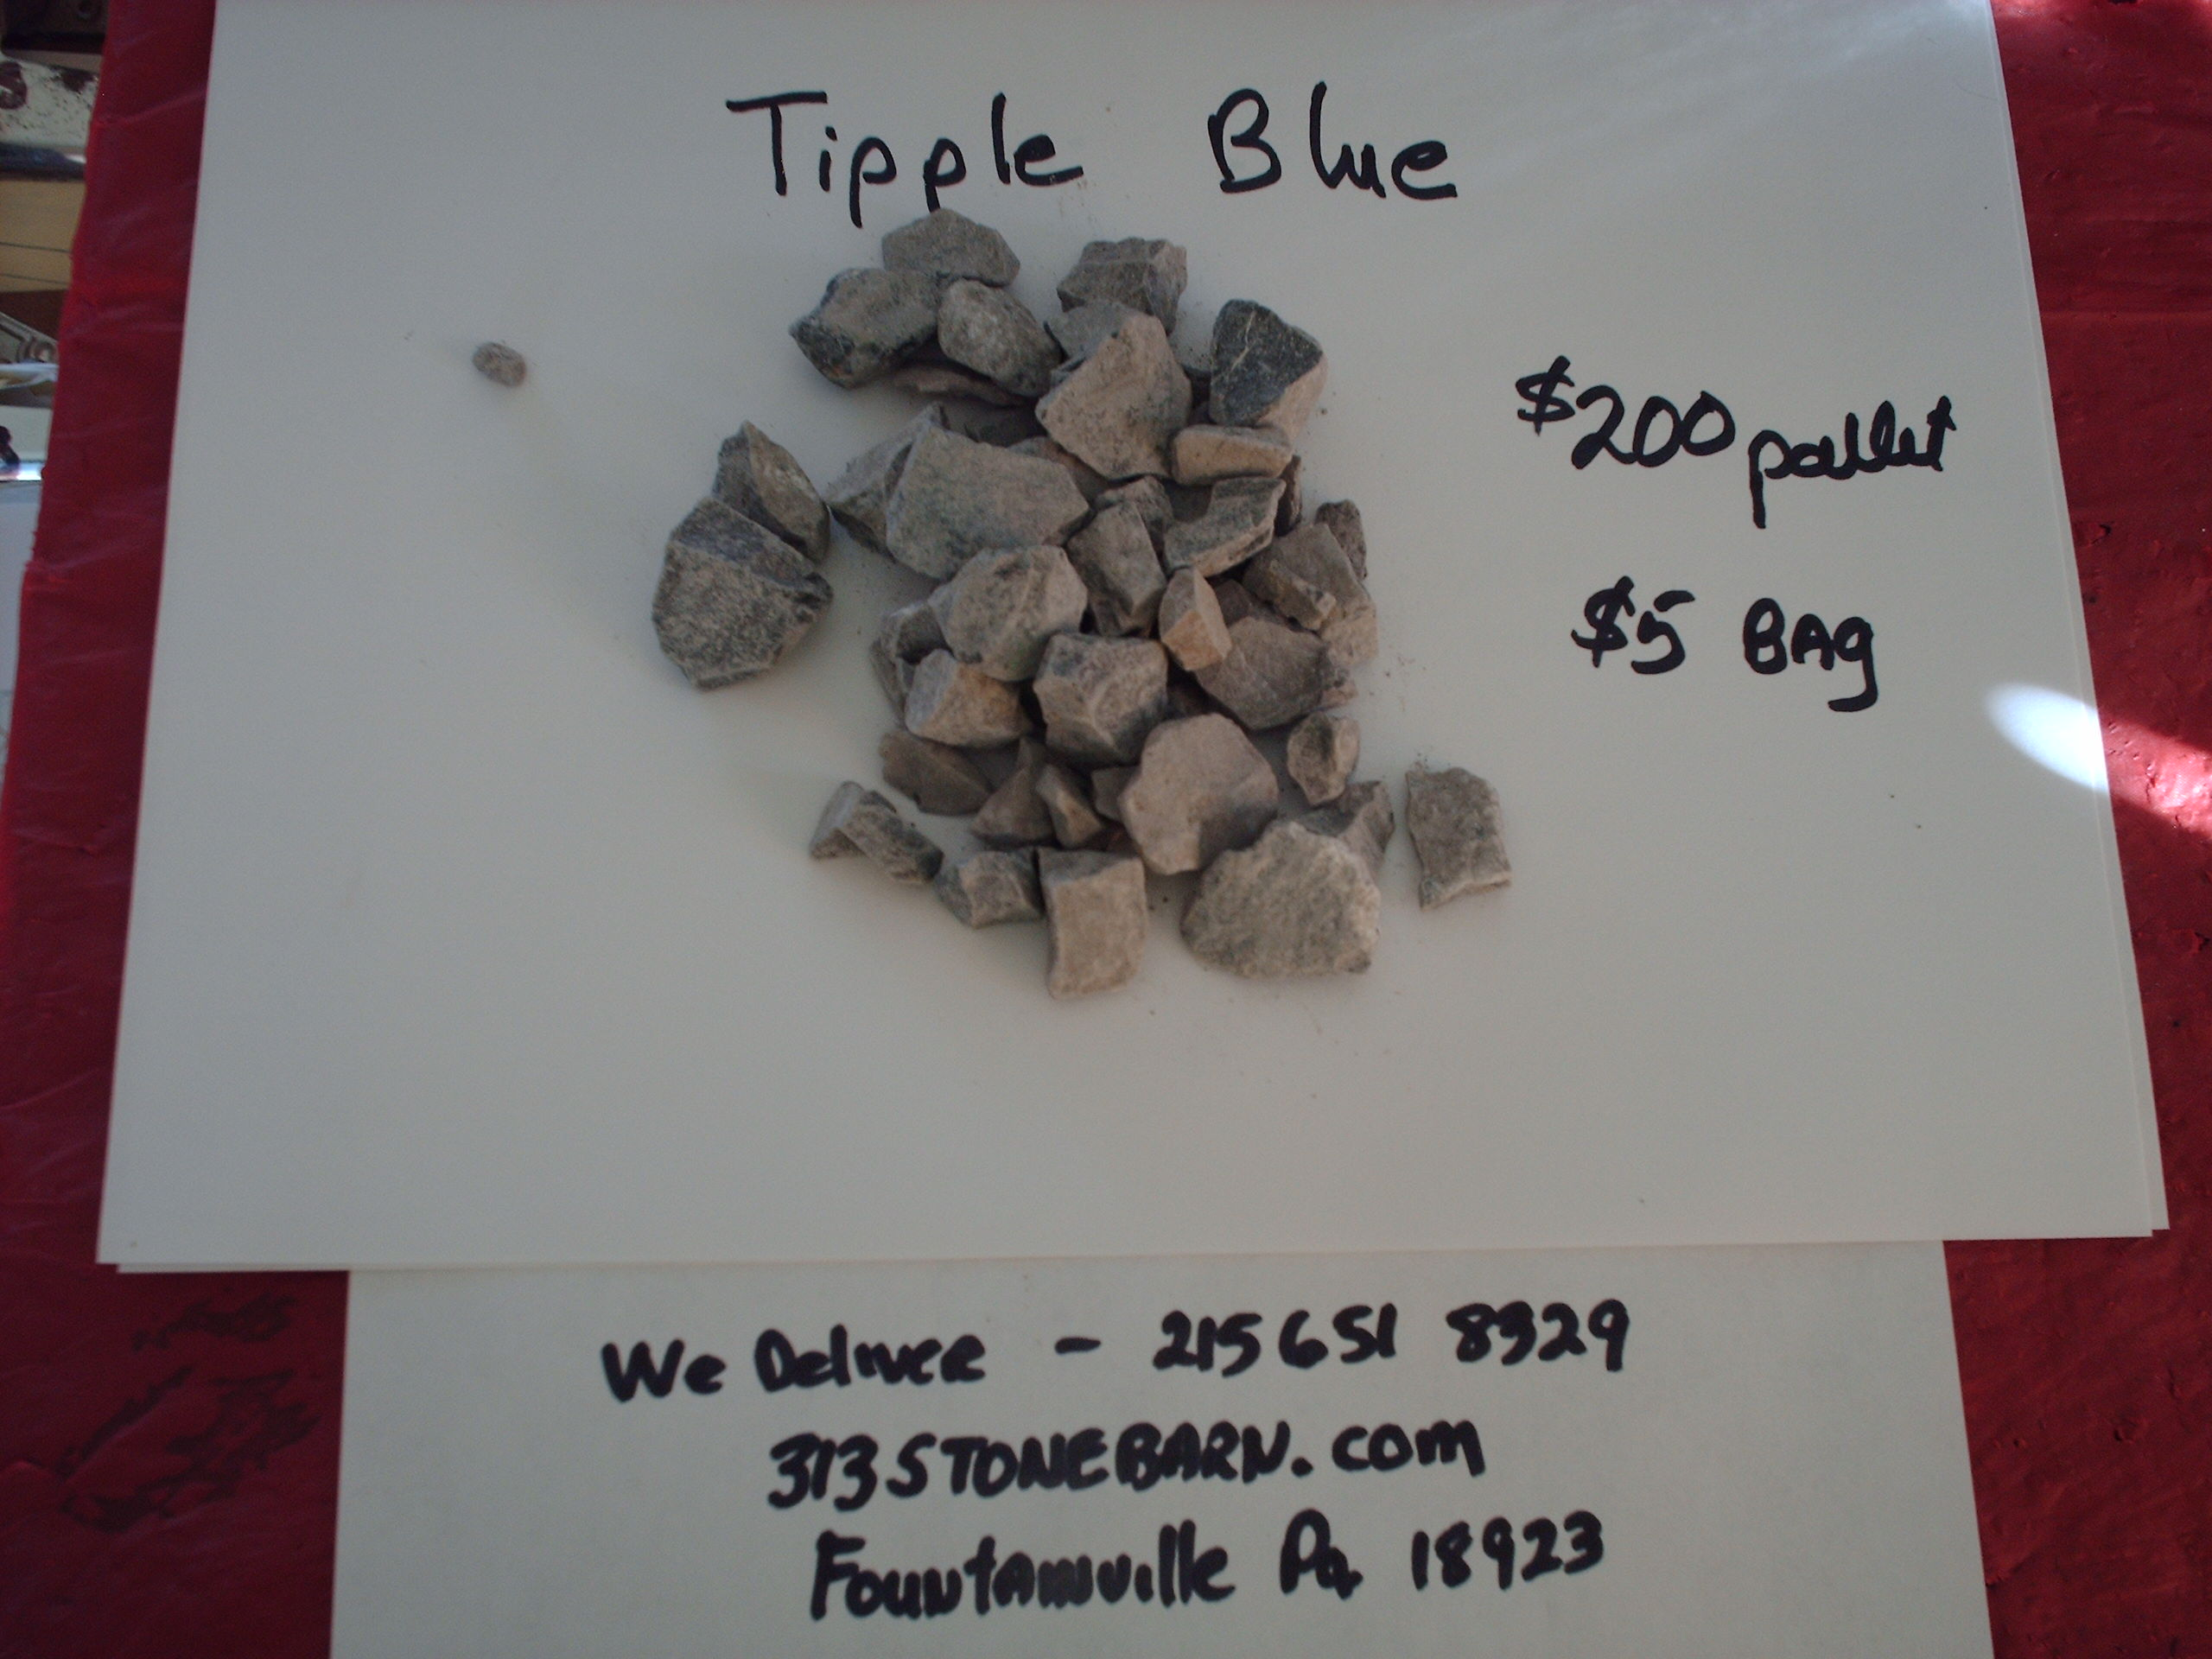 We deliver pallets of these Tipple Blue Chips.